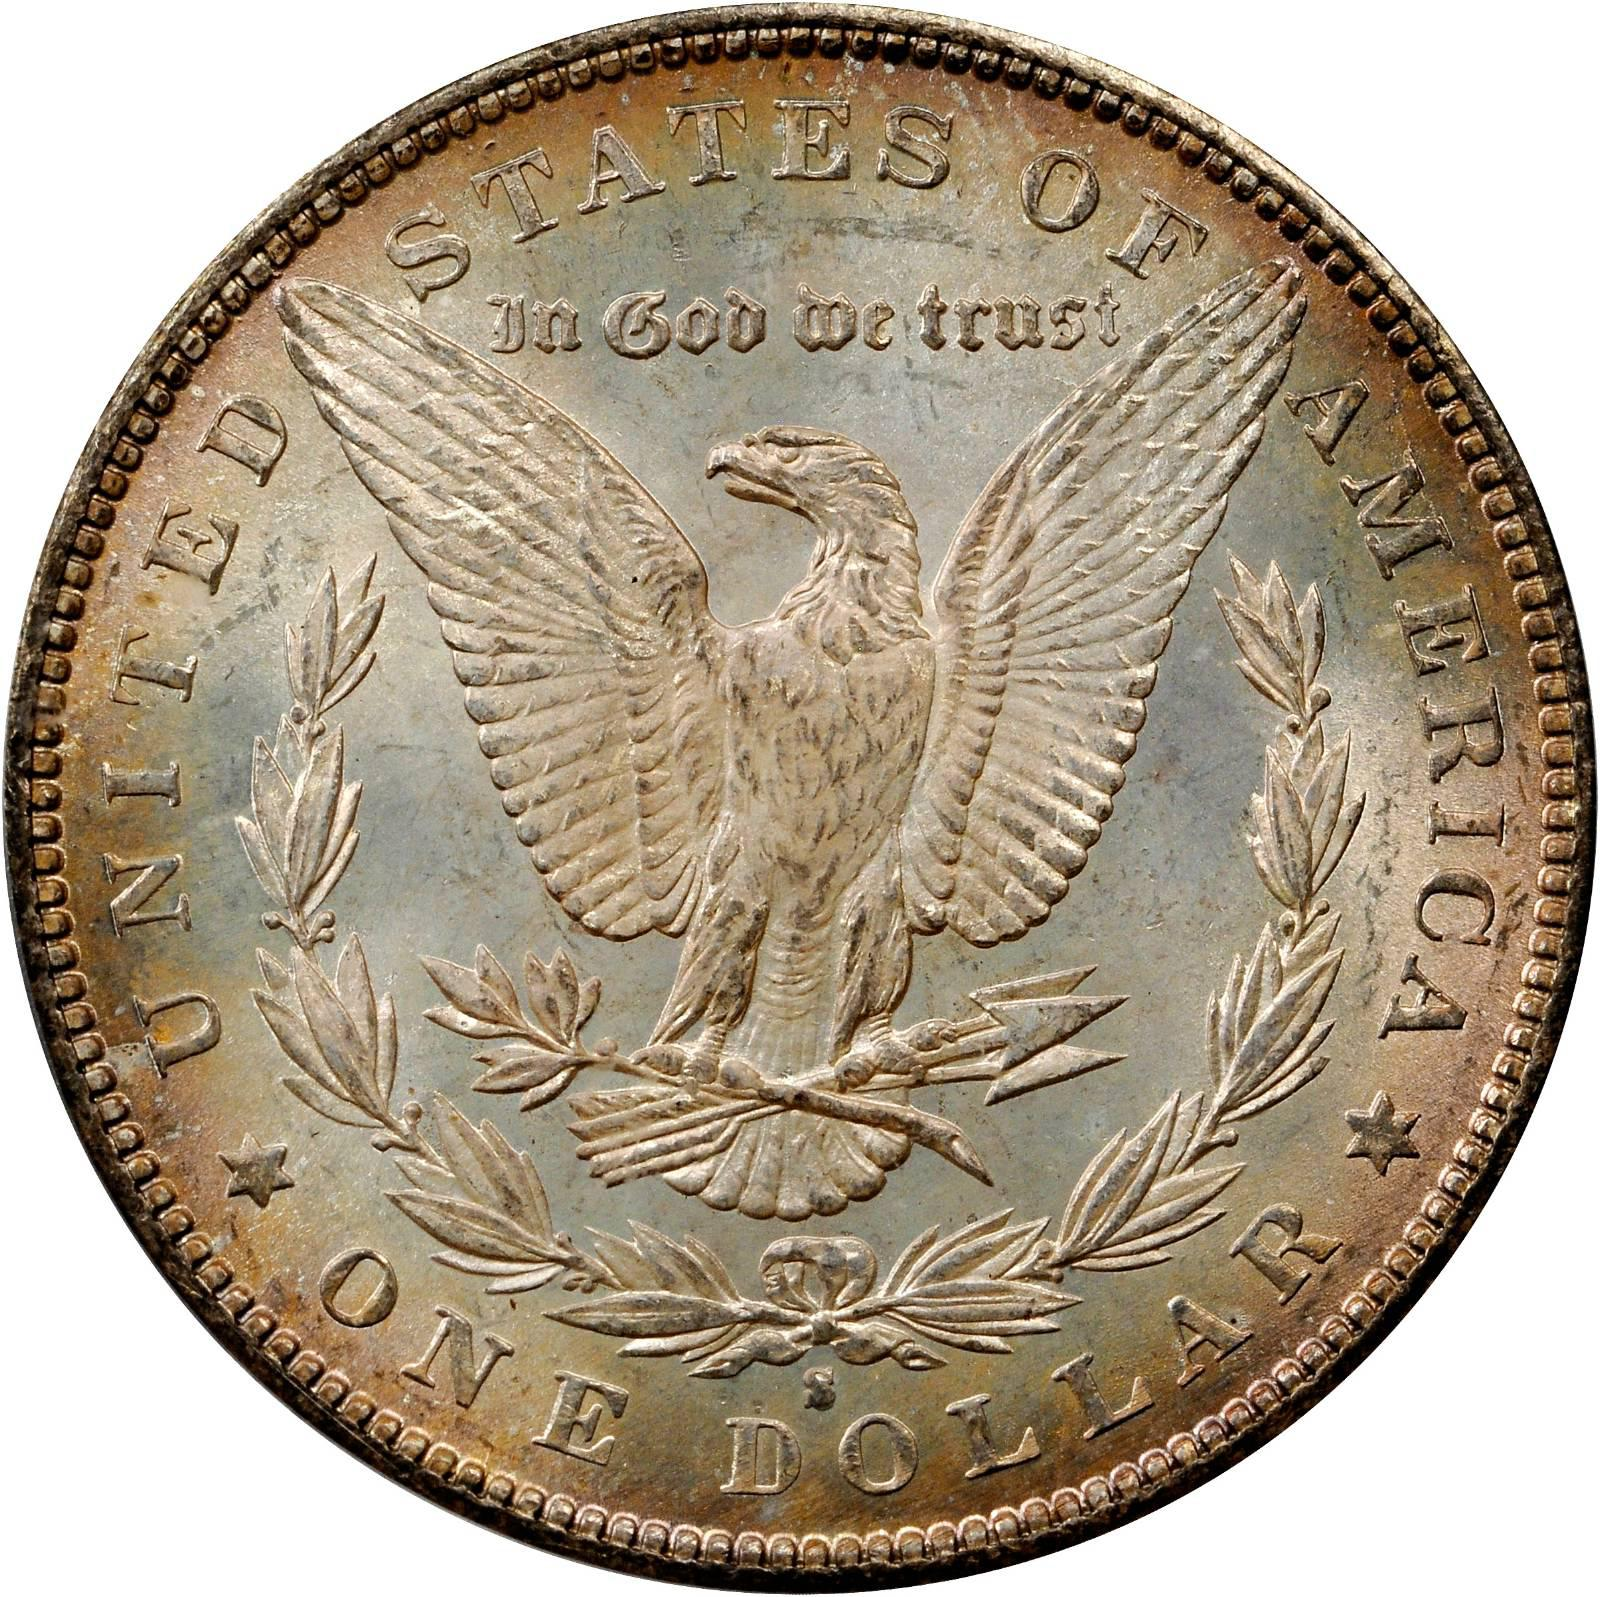 Value Of 1891 S Morgan Dollar Rare Silver Dollar Buyers